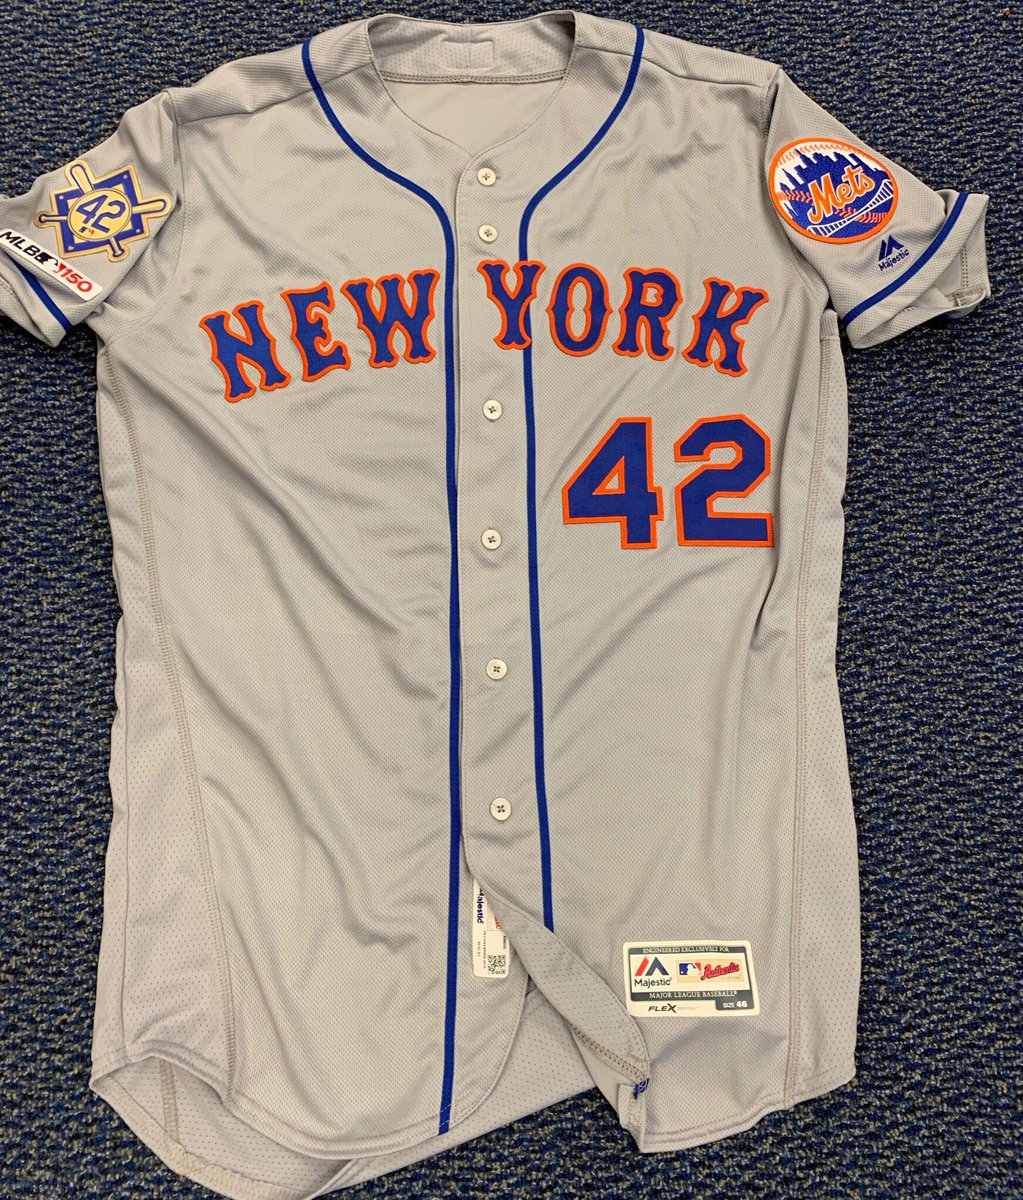 Ready to battle Philly for the first time this season! Special uniforms on #JackieRobinsonDay to kick start the series. #LGM <br>http://pic.twitter.com/j2CXi2HJaO